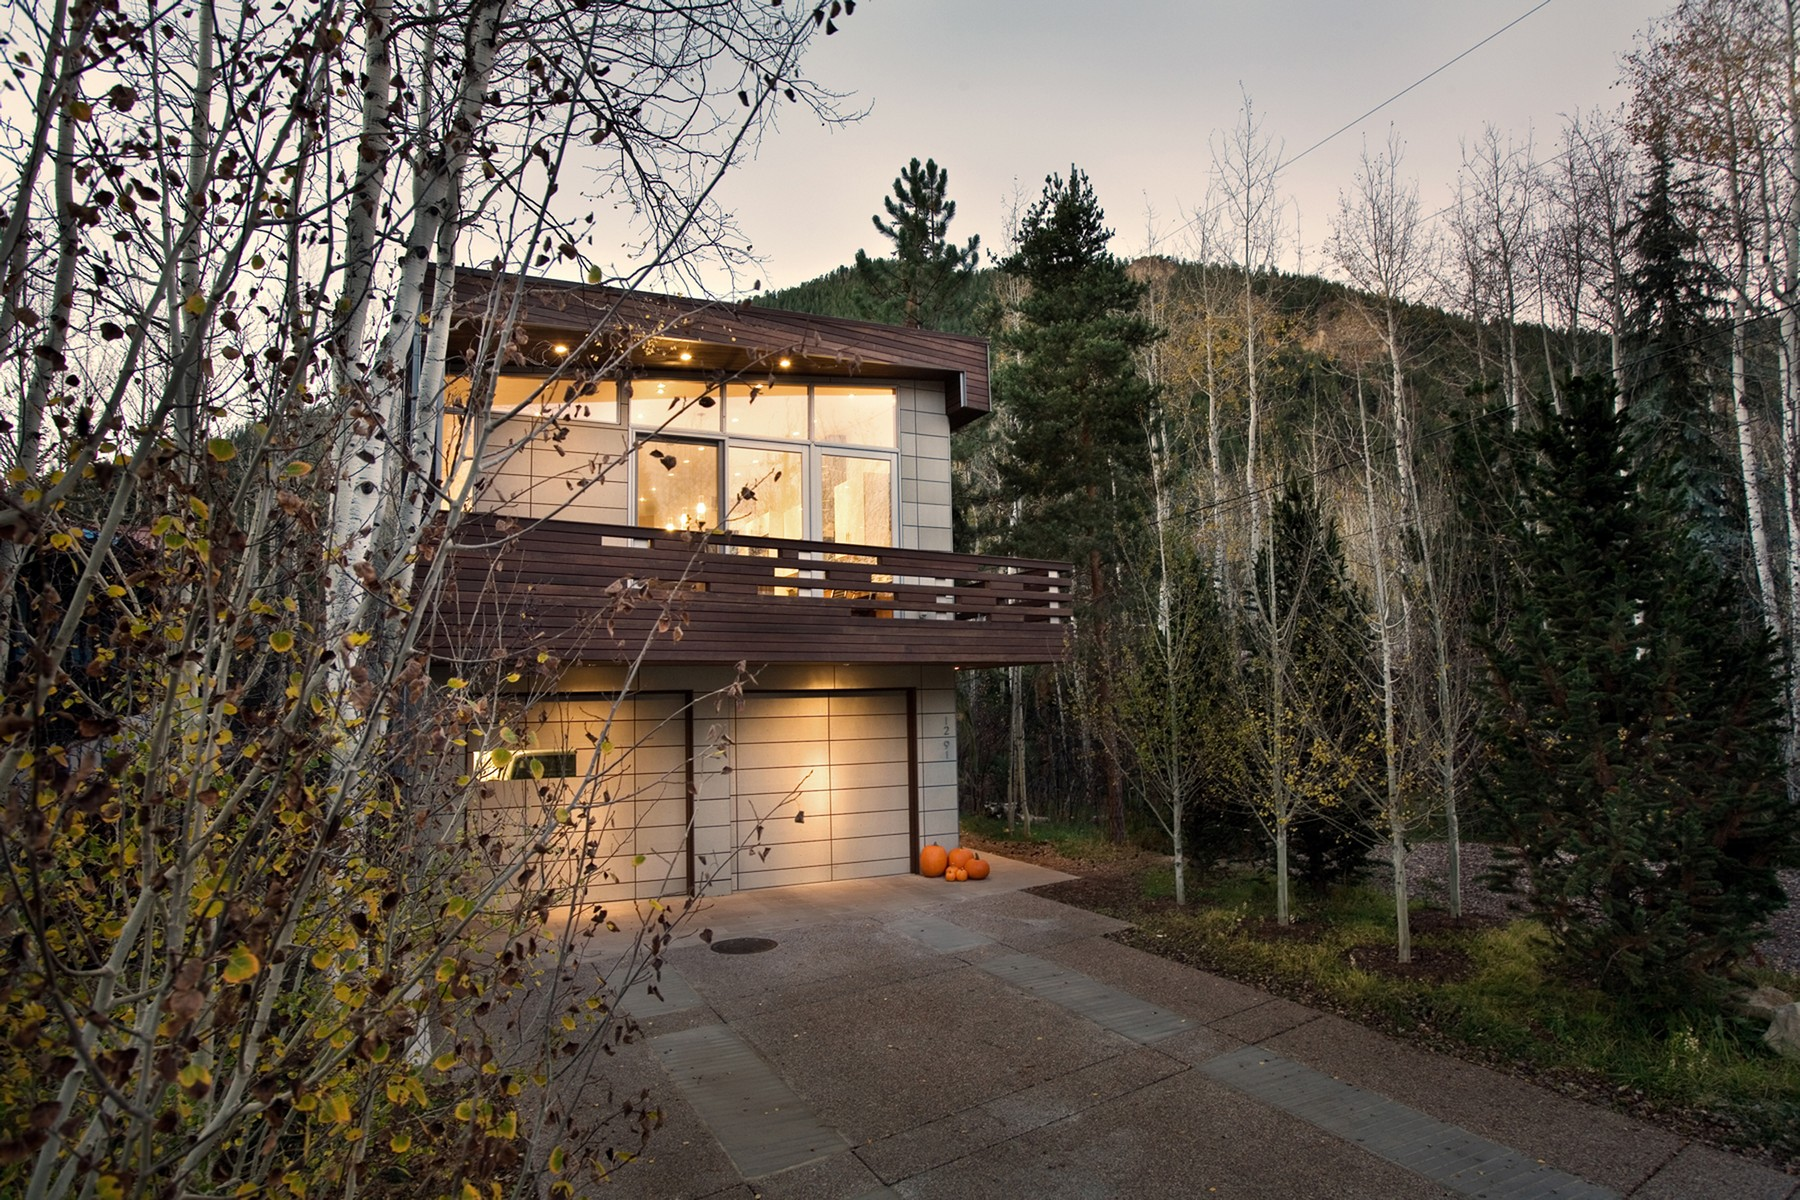 Maison unifamiliale pour l Vente à Enticing Contemporary in East Aspen 1291 Riverside Drive East Aspen, Aspen, Colorado, 81611 États-Unis